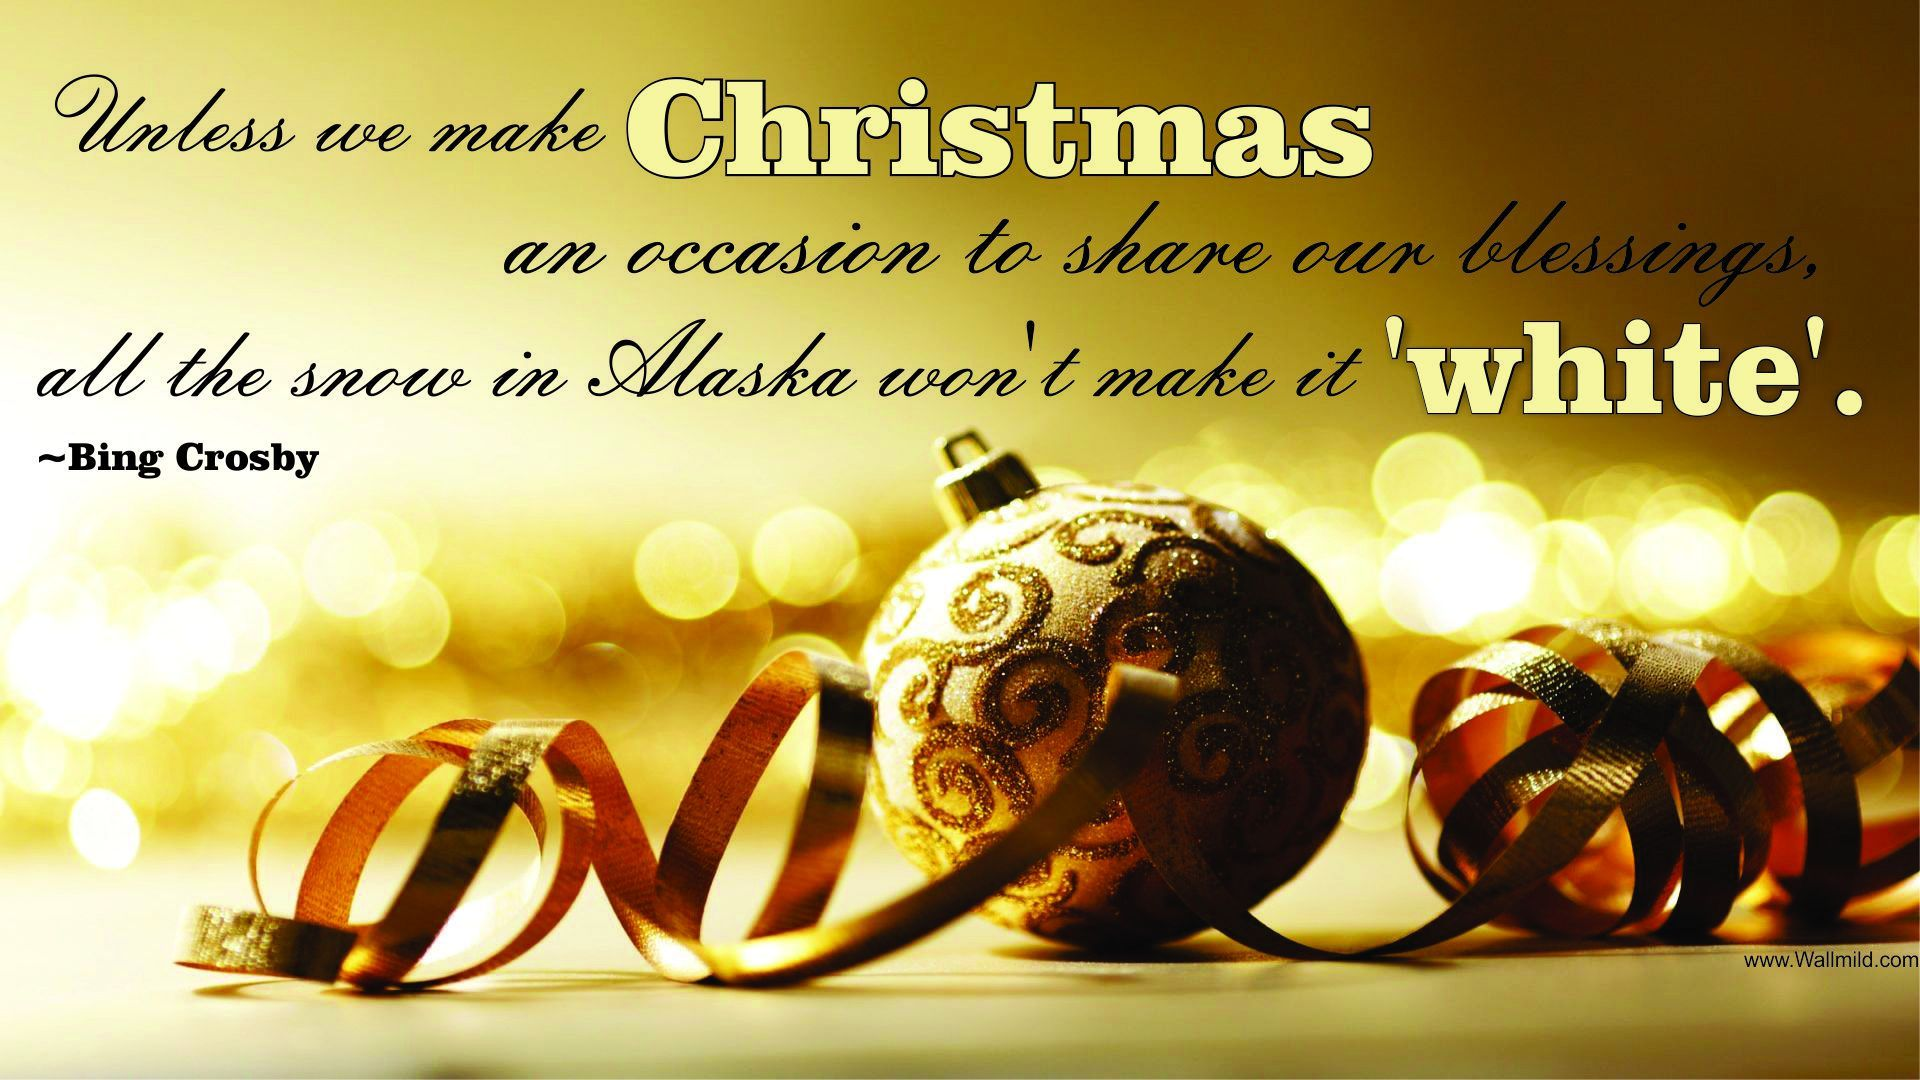 Christmas Quotes Christmas Quotes Images Merry Christmas